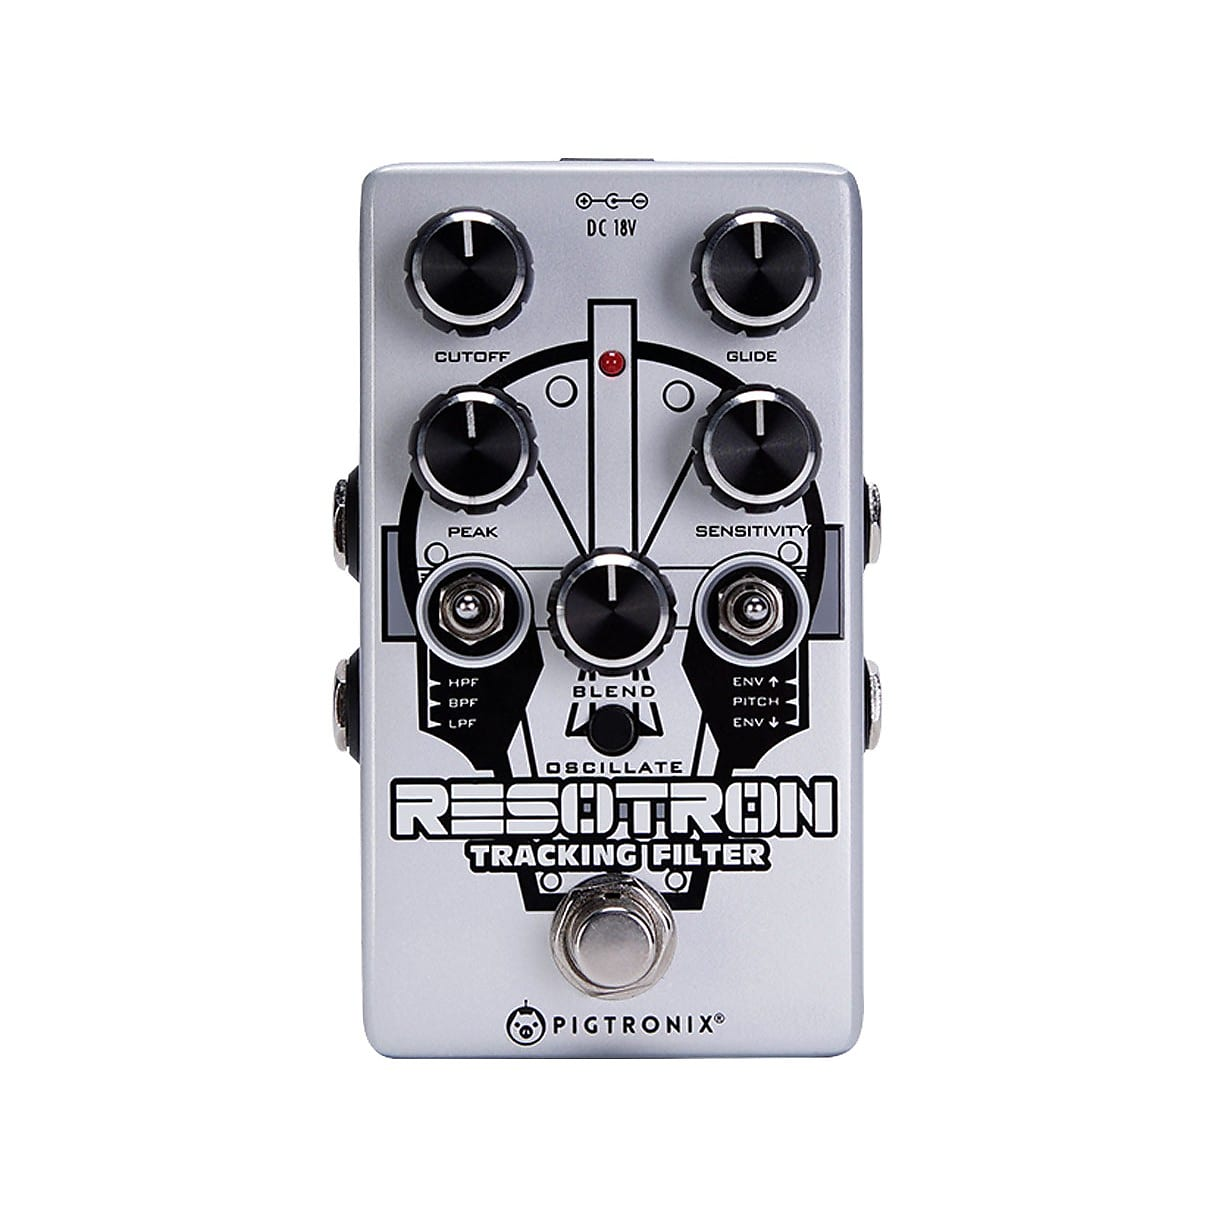 Pigtronix RTF Resotron Analog Tracking Filter Effects Pedal